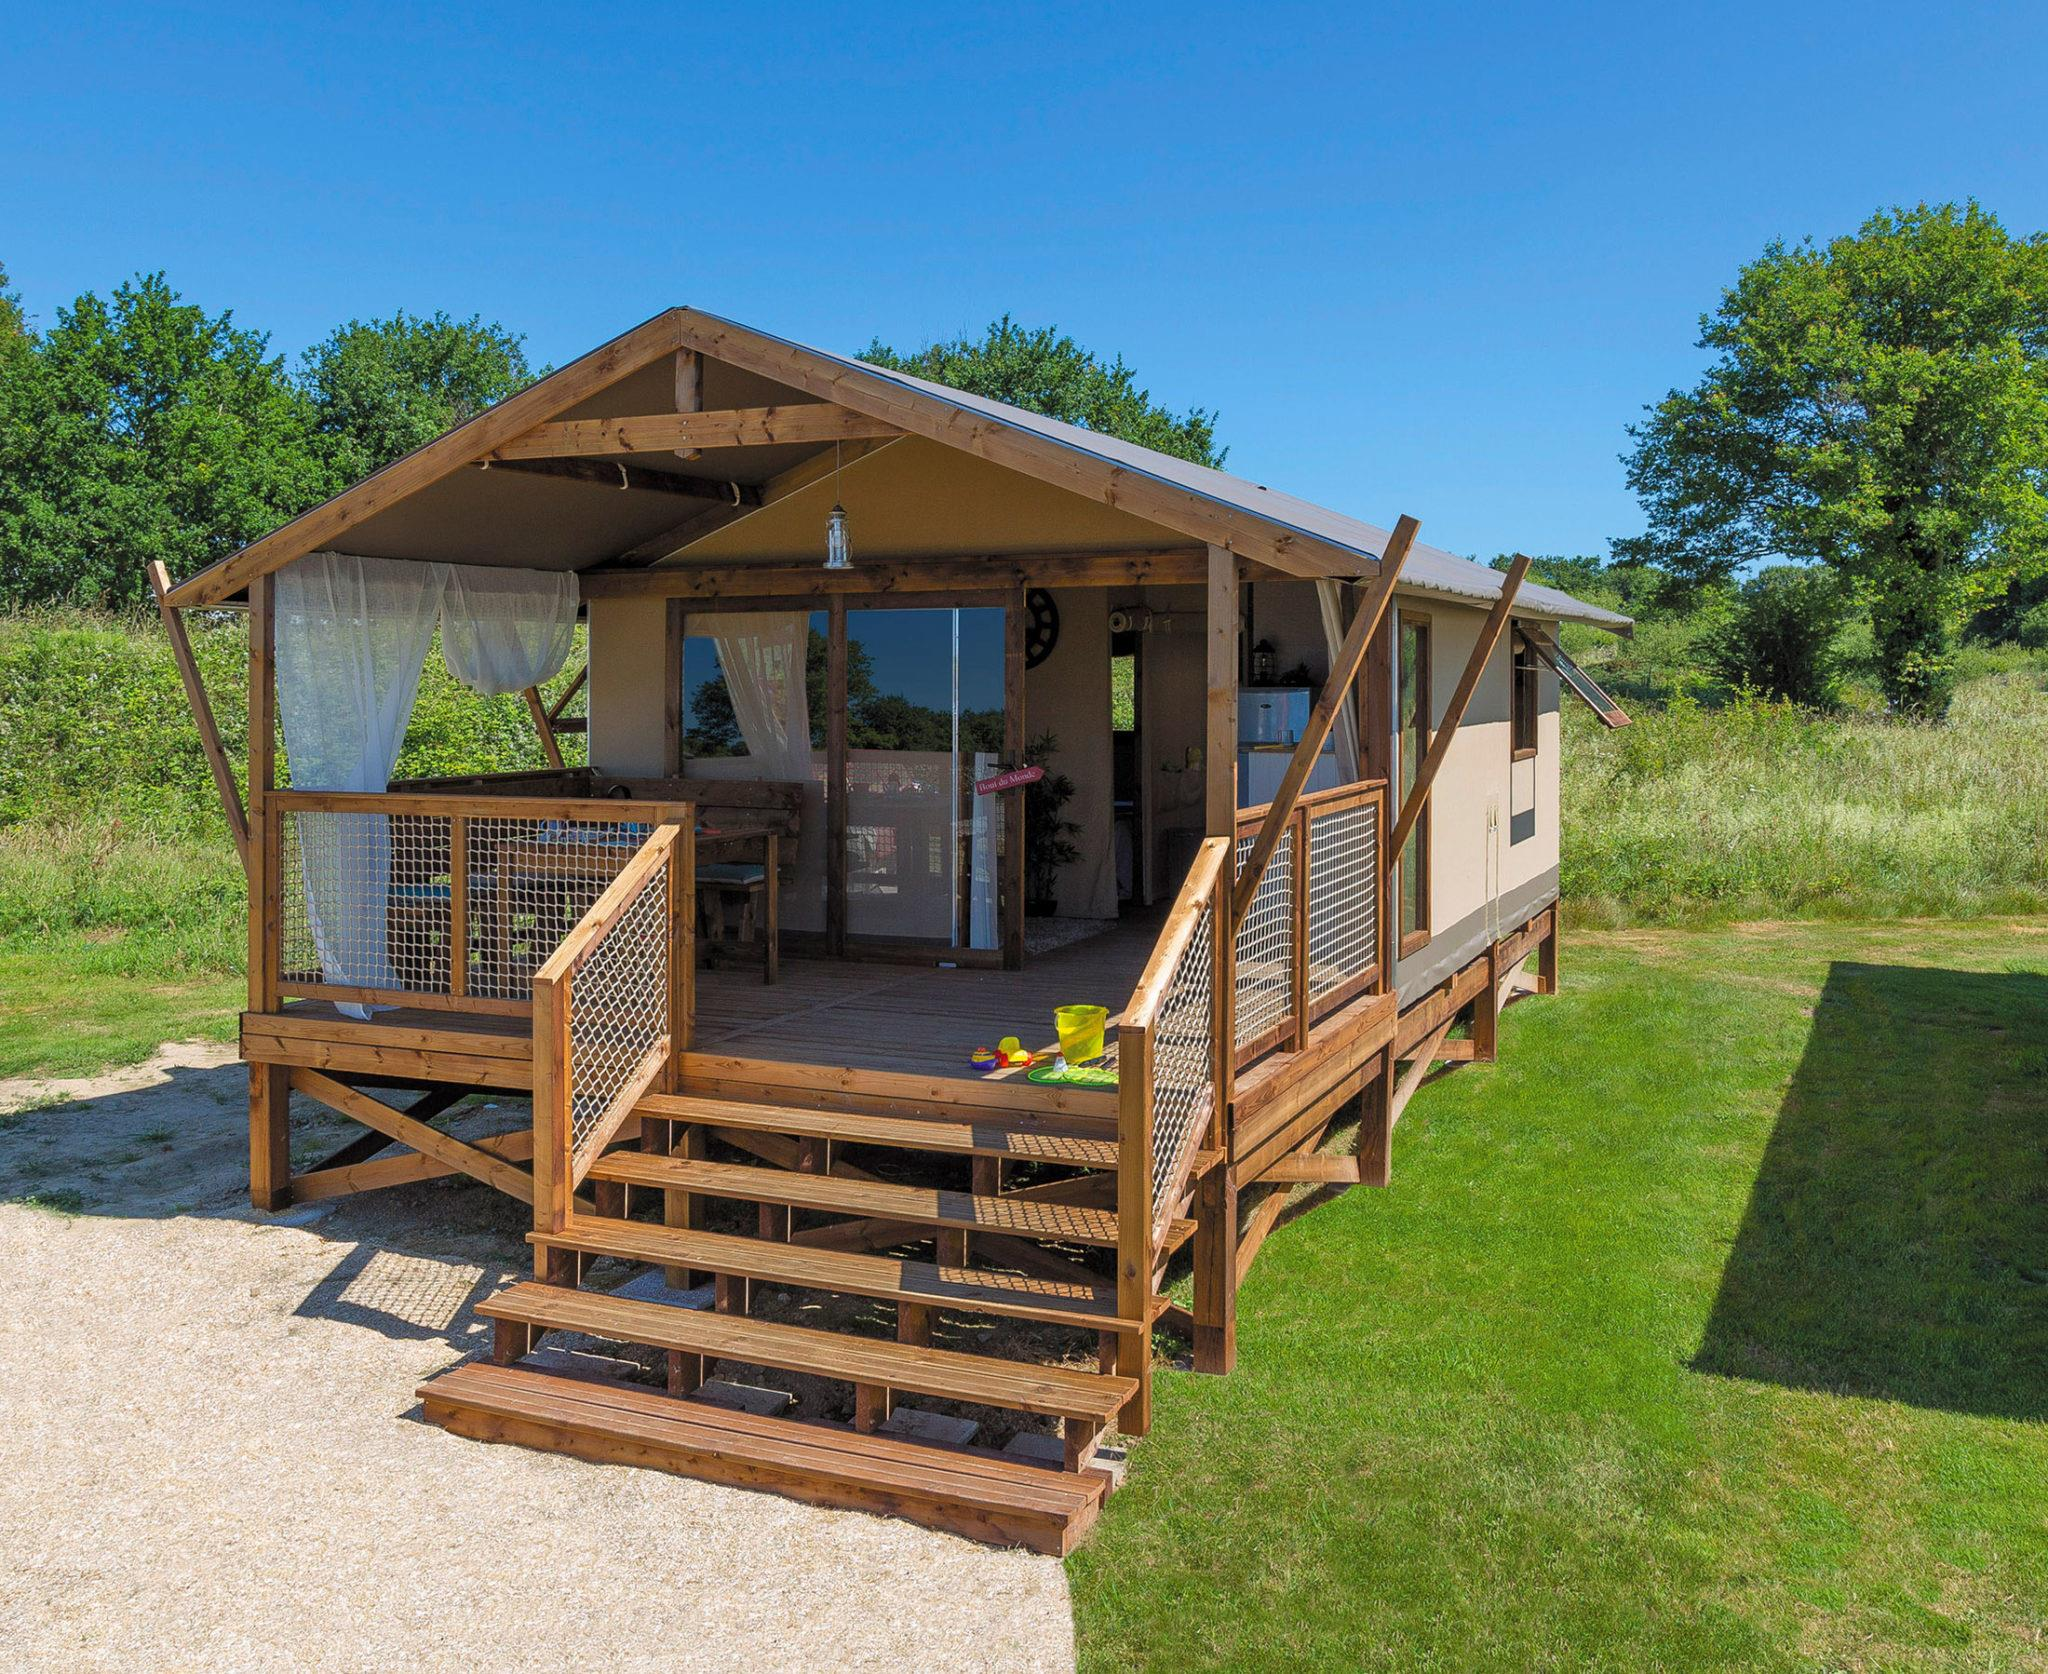 Accommodation - Bungalow High Confort - Camping Ile de la Comtesse